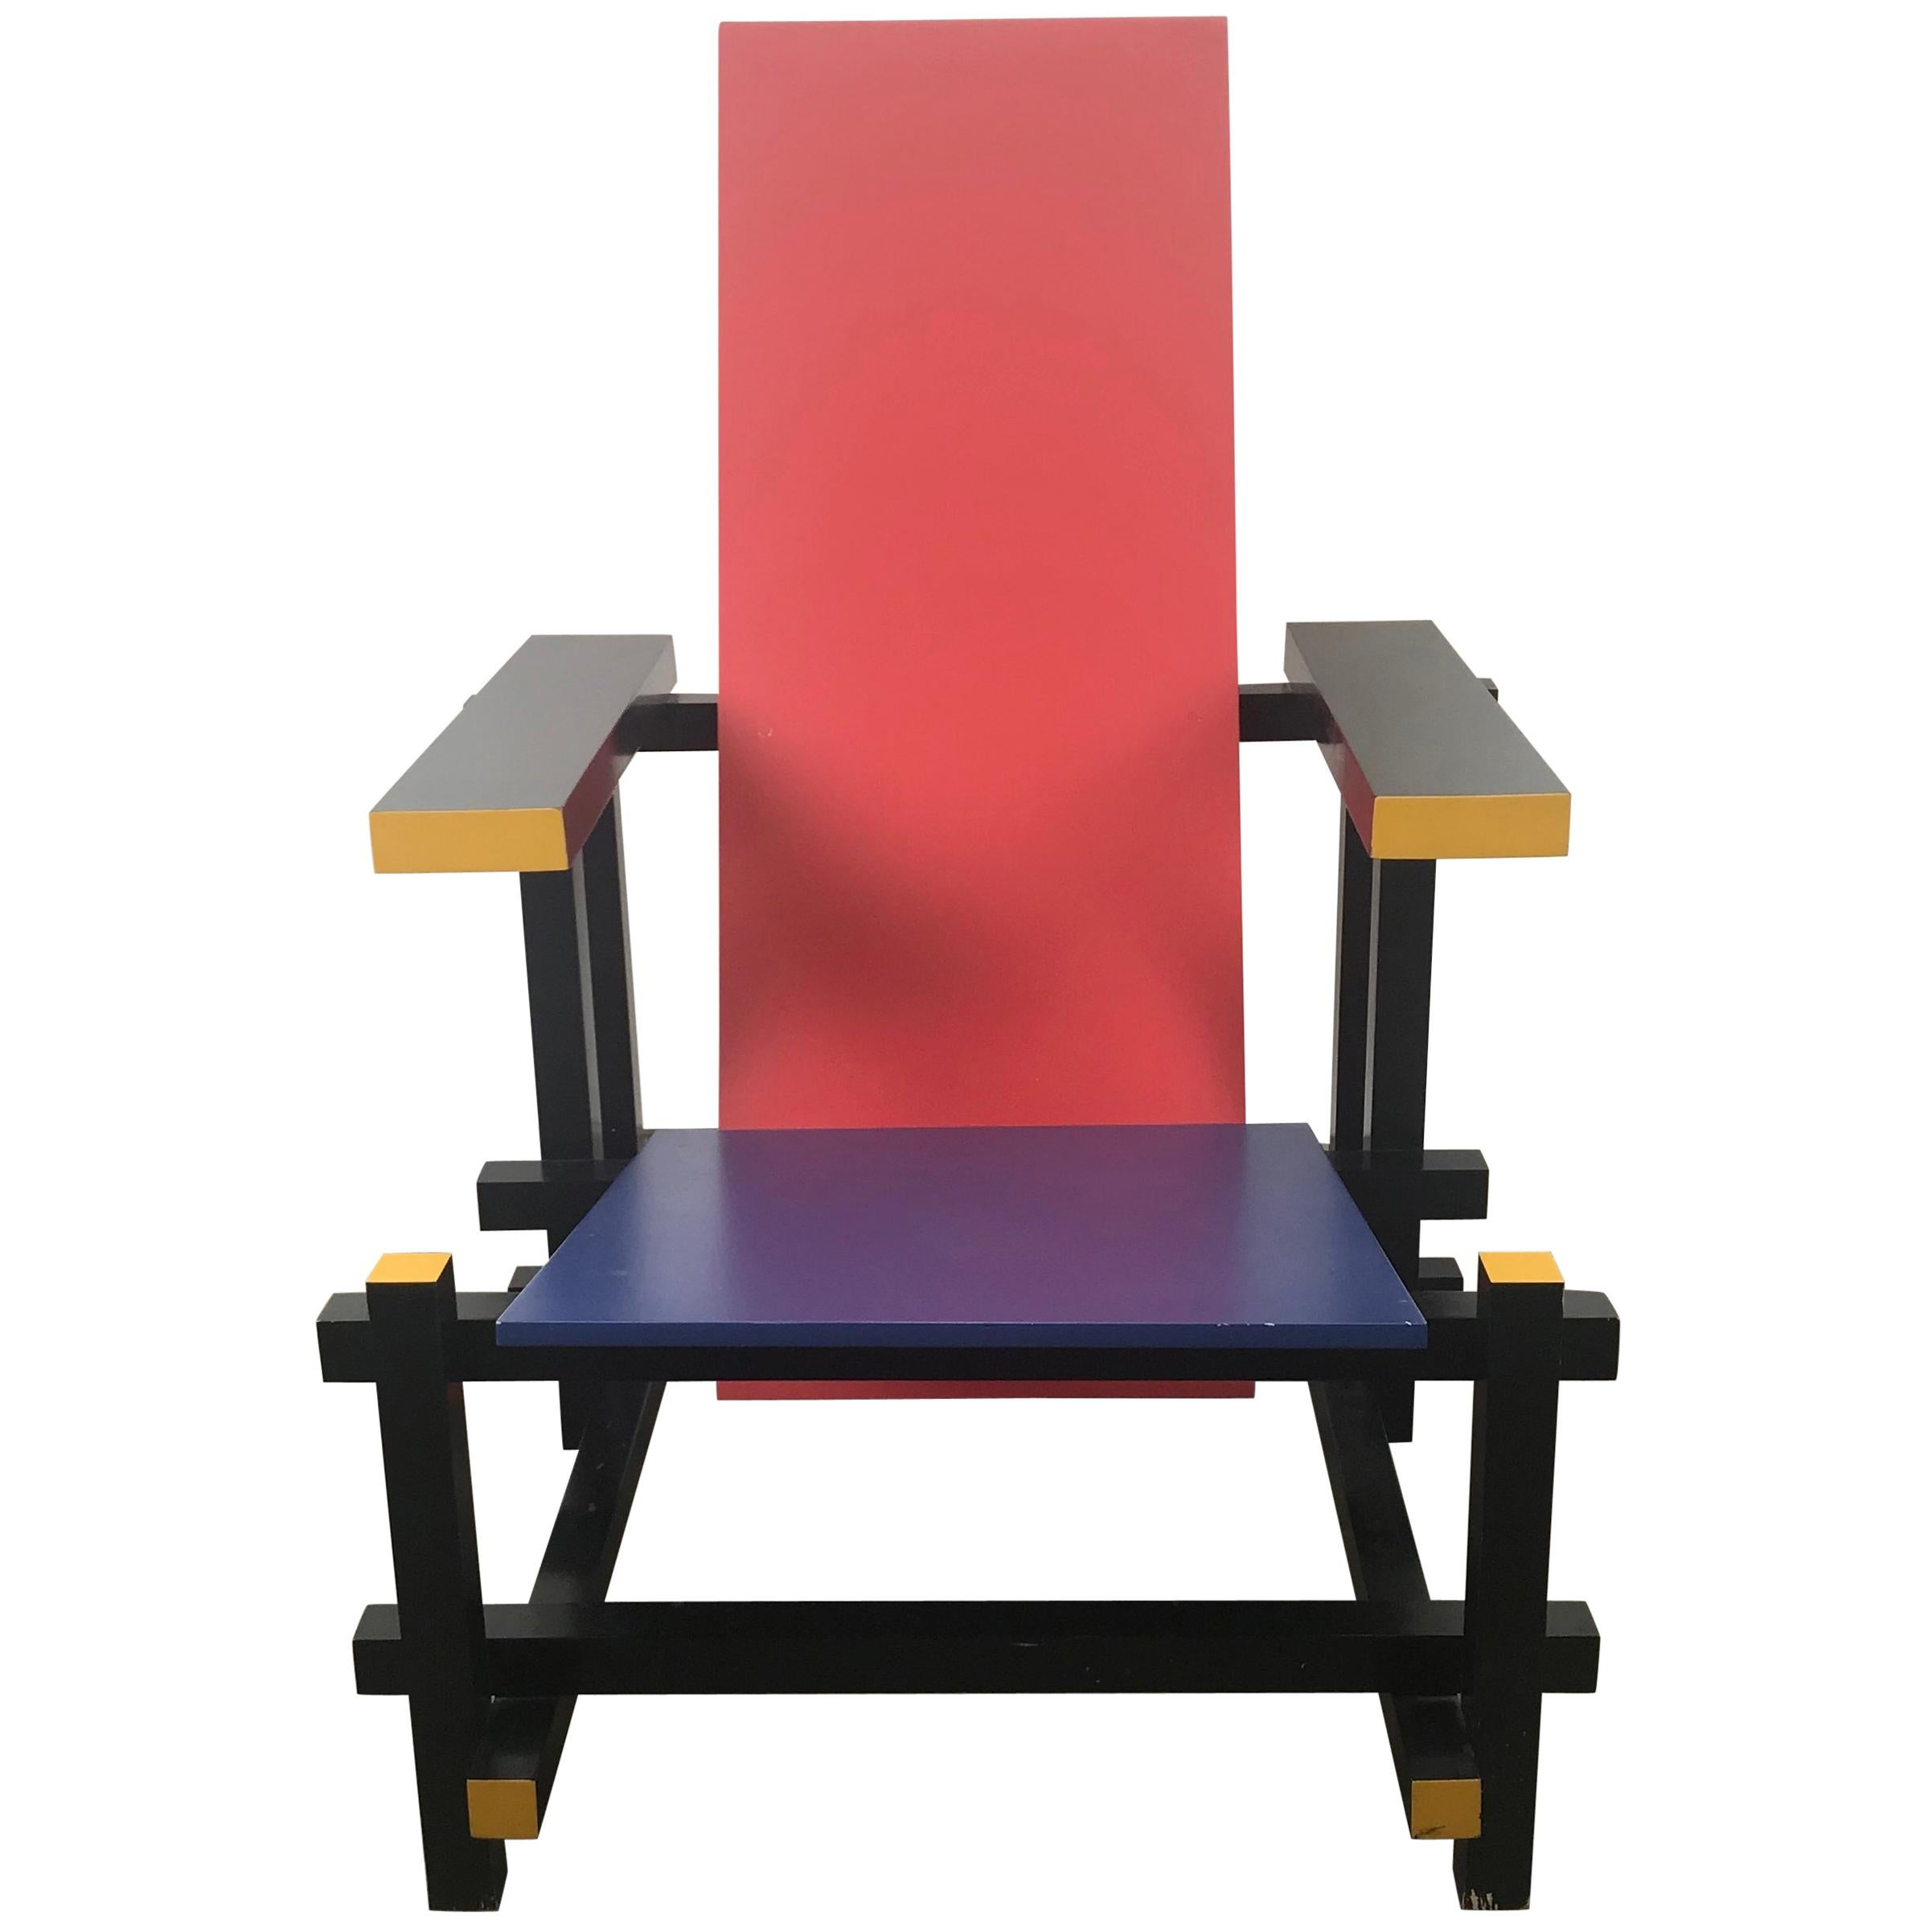 Famous Chair Gerrit Thomas Rietveld Red Blue Chair Gerard Van De Groenekan